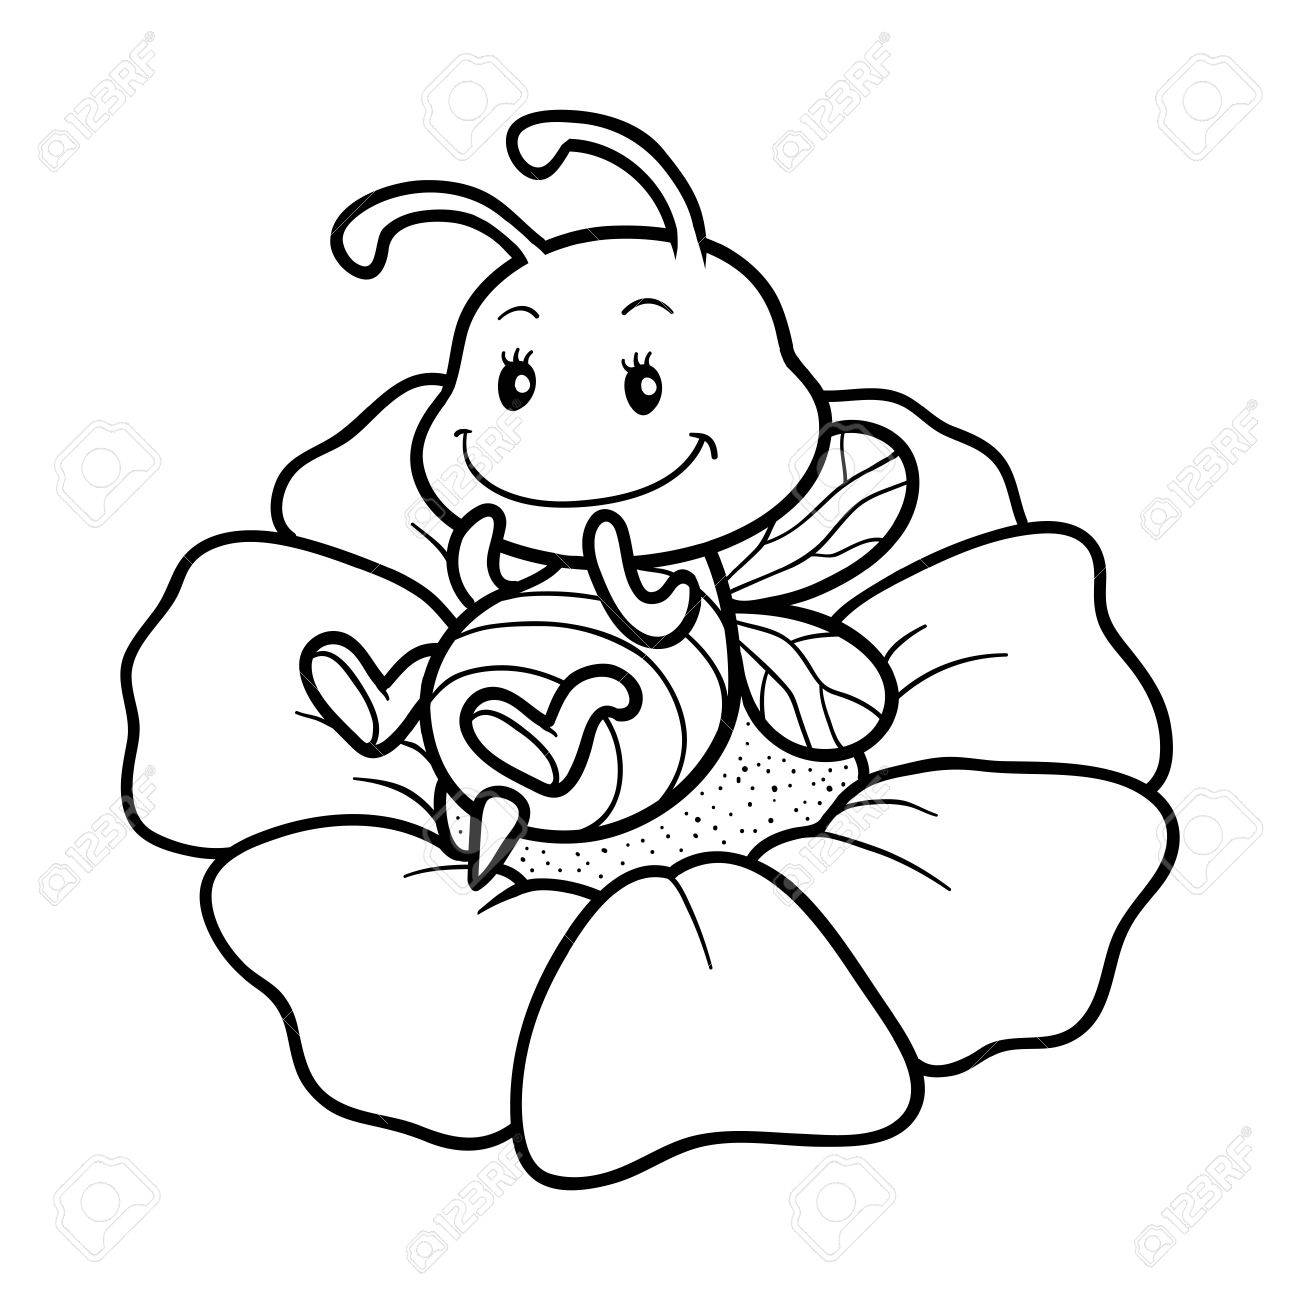 coloring book for children coloring page with a small bee stock vector 60596620 - Small Coloring Books